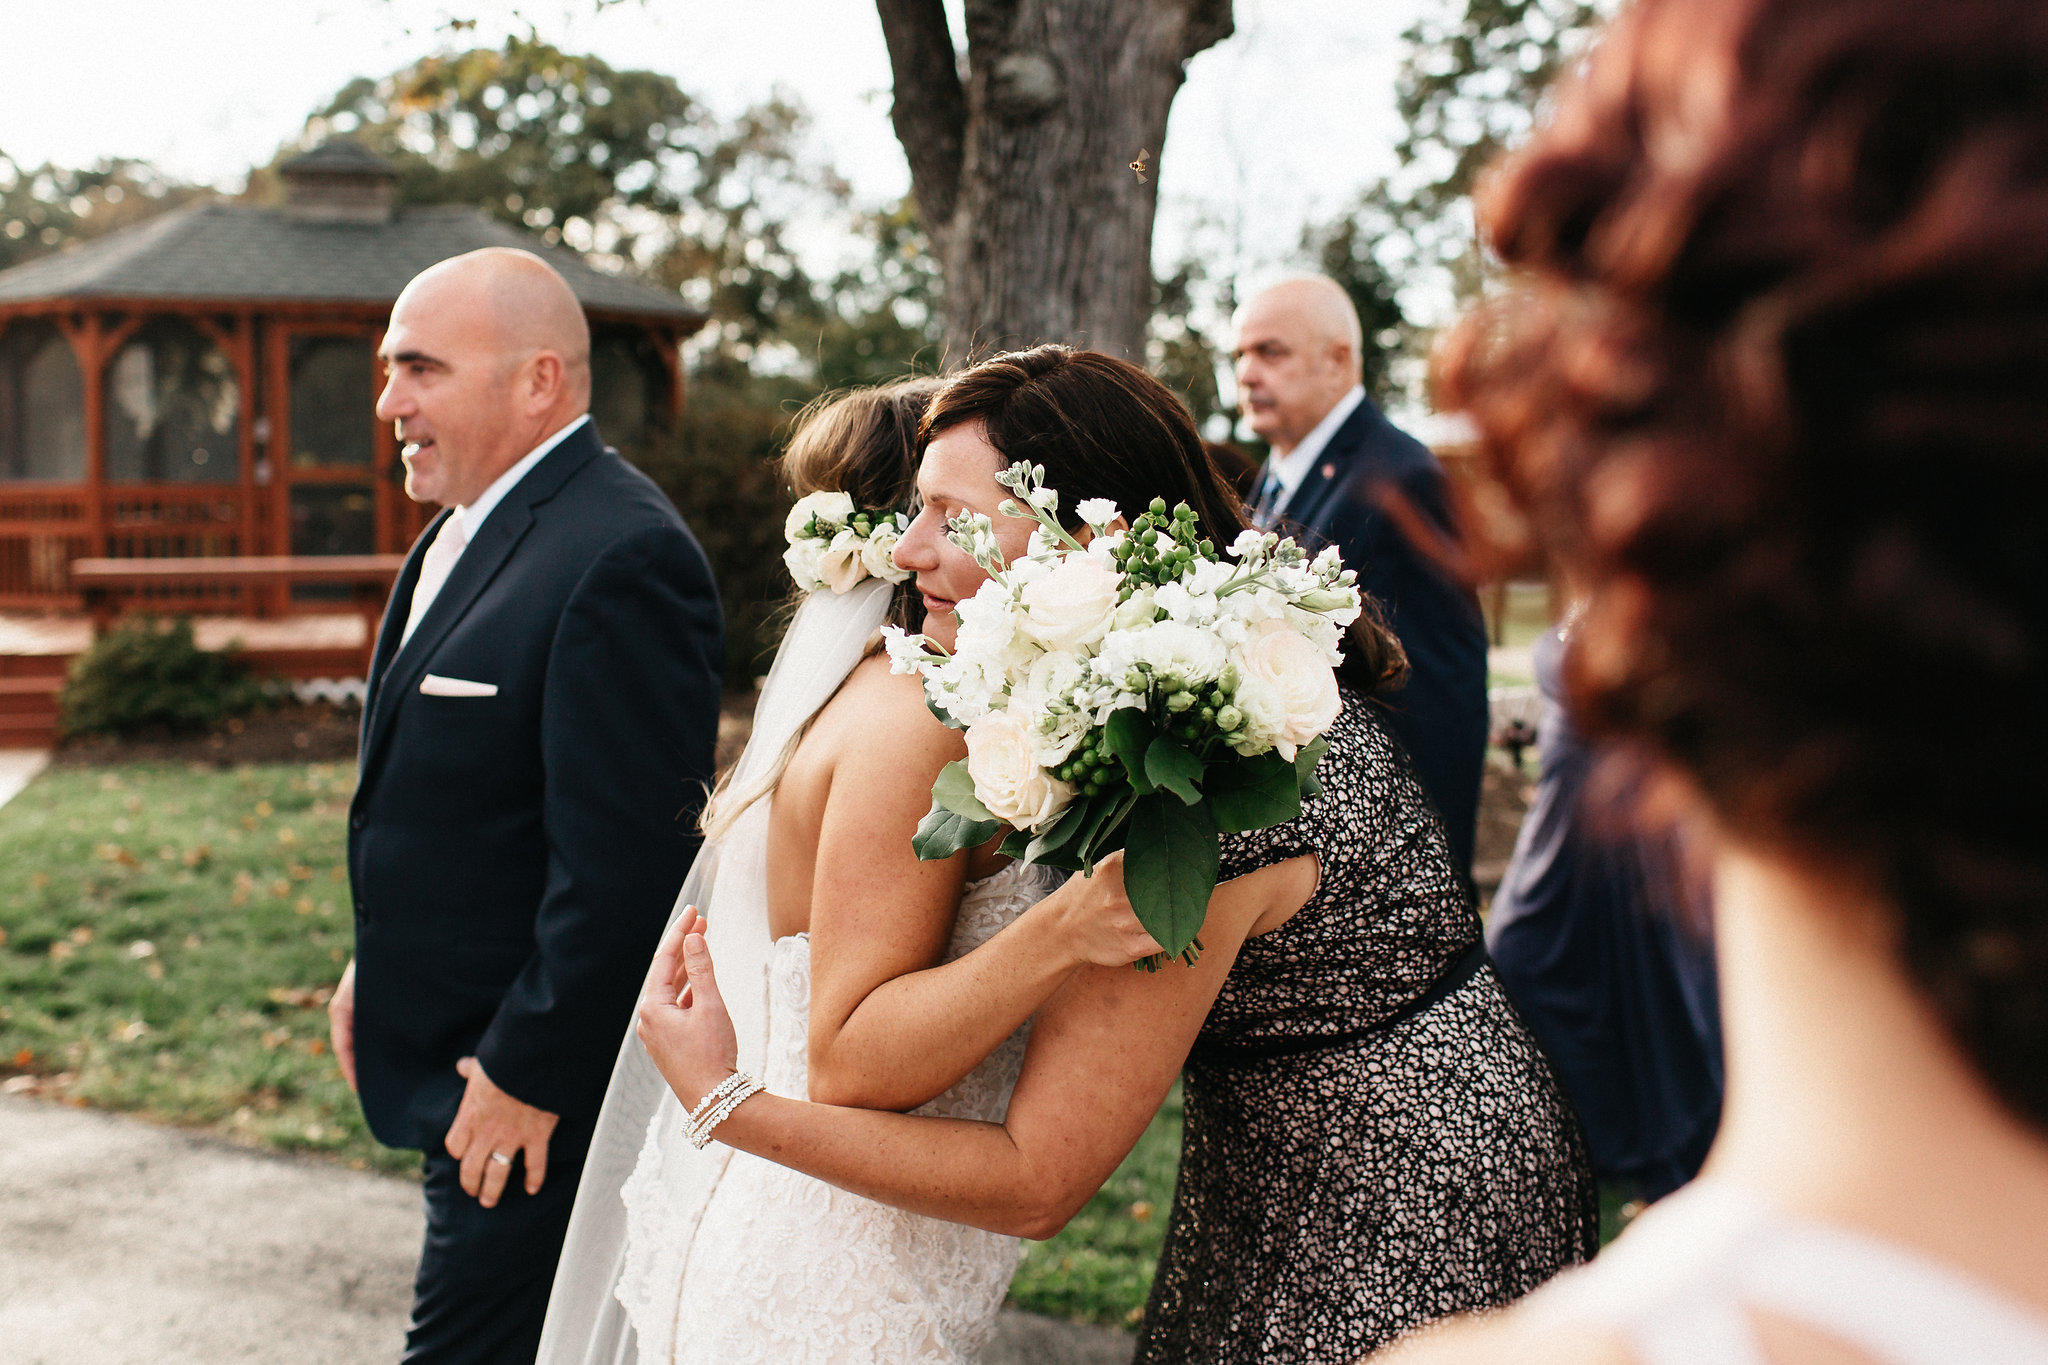 Ashley&NathanMarried2017-11-10at19.26.54PM64.jpg